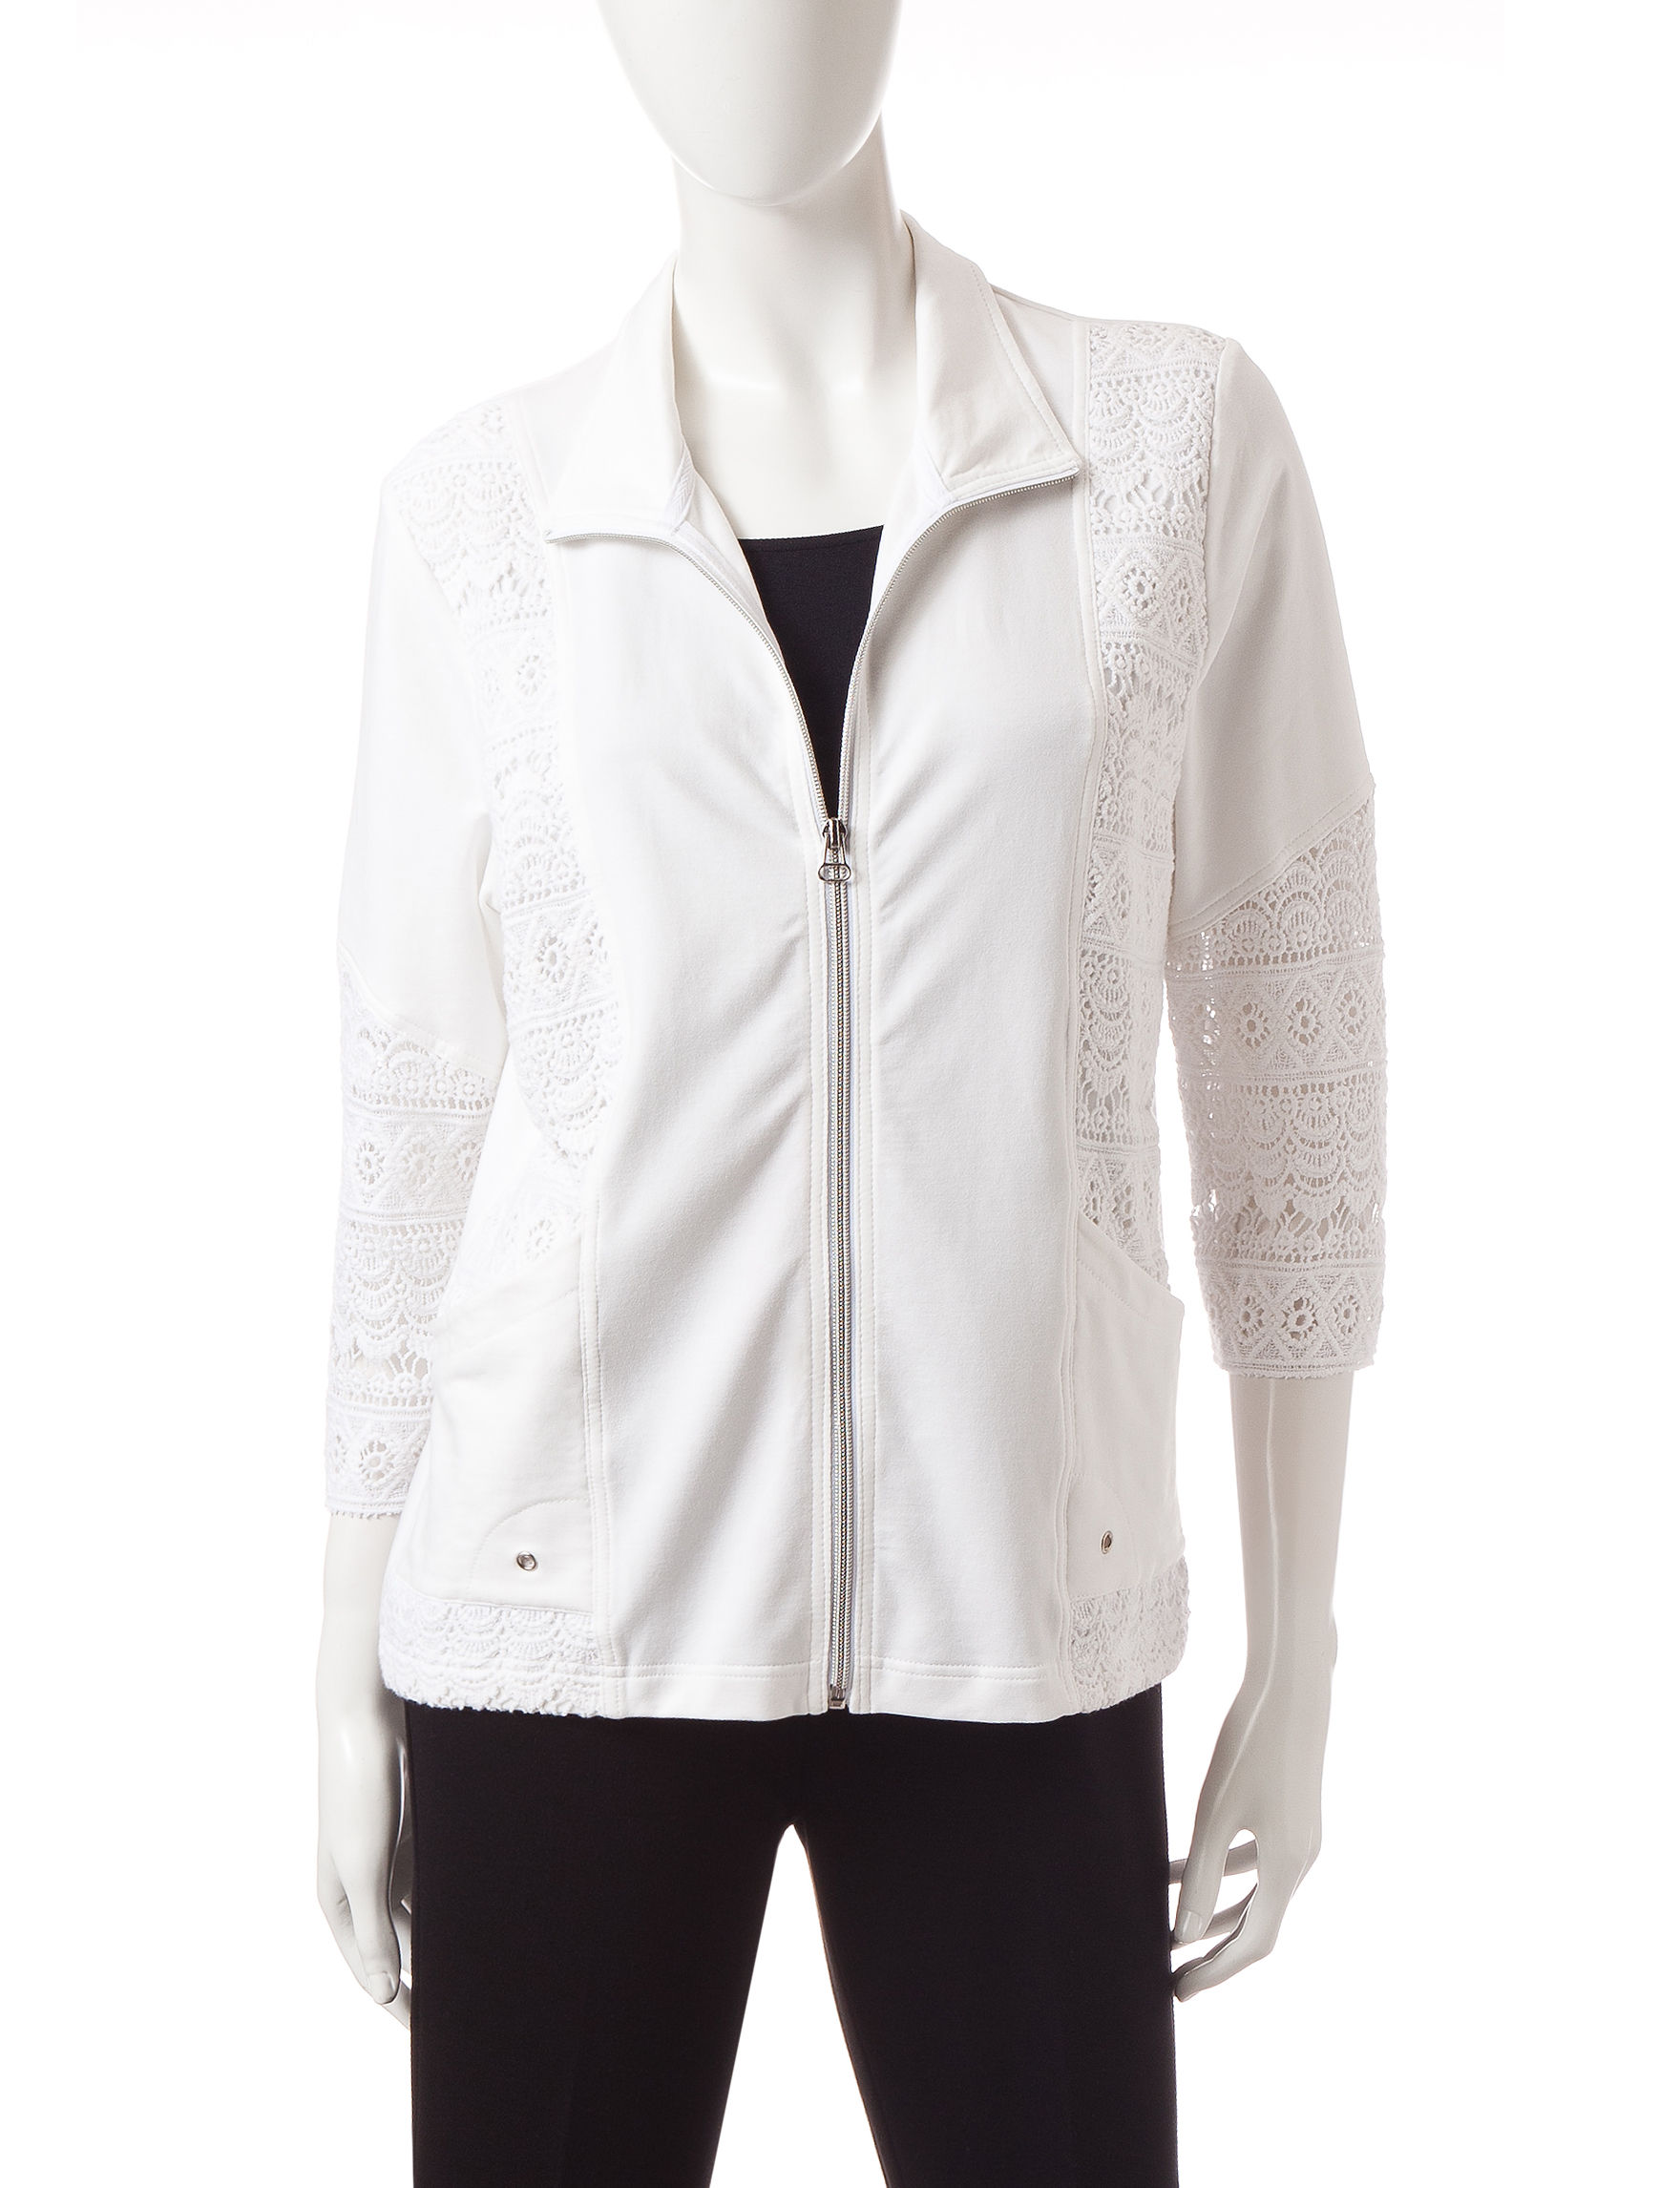 Onque Casuals White Lightweight Jackets & Blazers